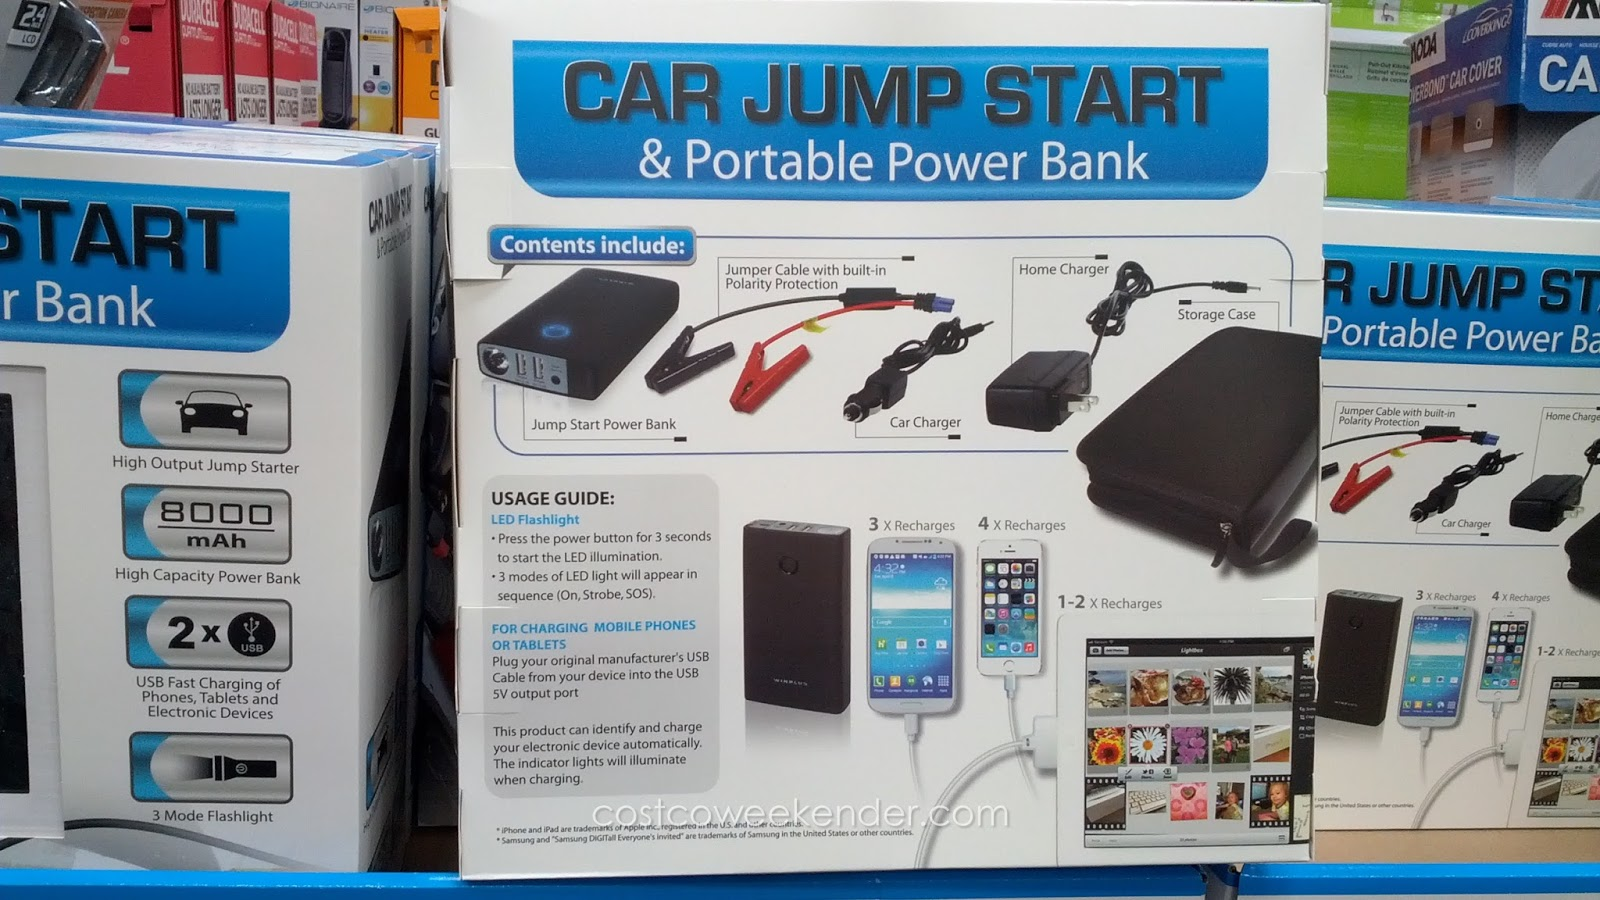 Car Jump Start and Portable Power Bank u2013 Jump starting your car has never been so & Car Jump Start and Portable Power Bank | Costco Weekender